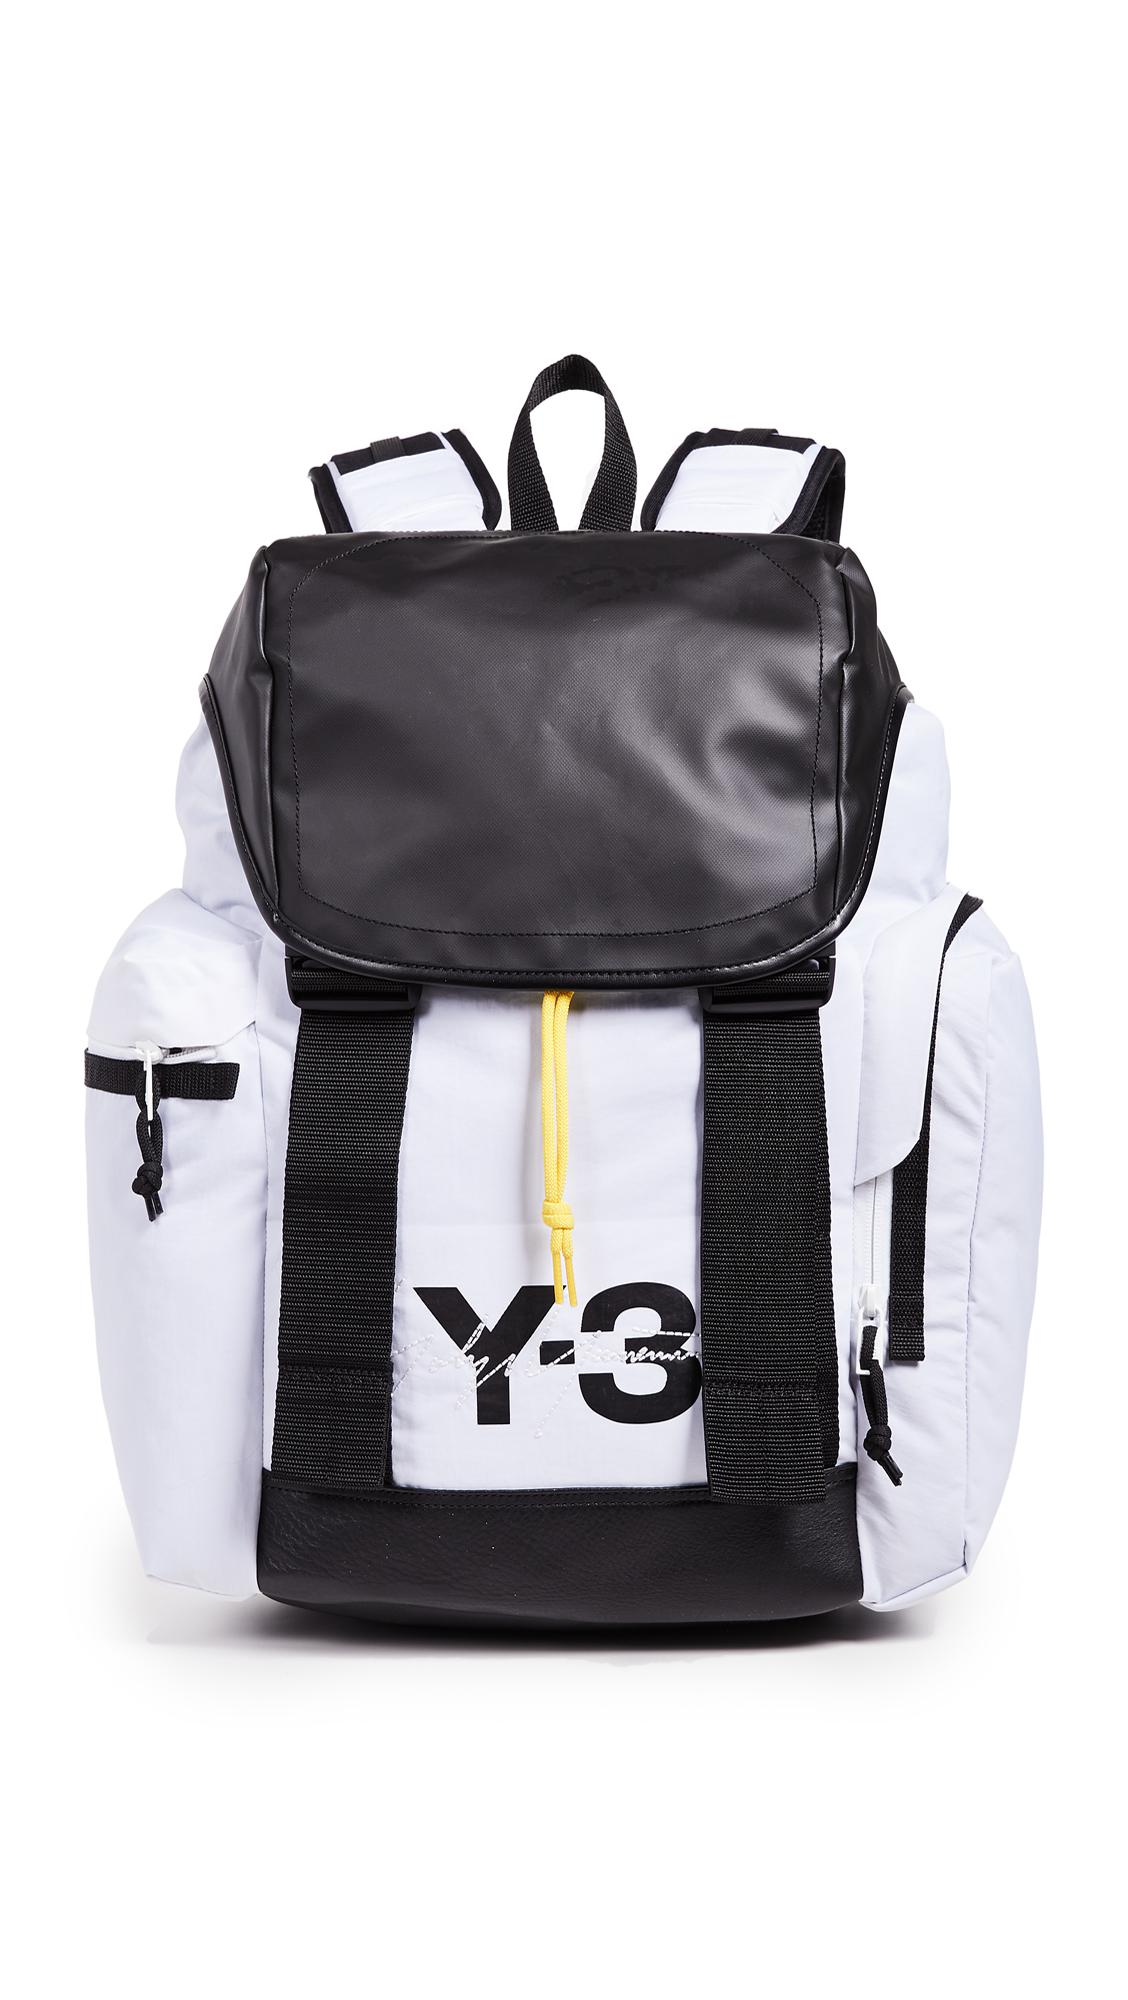 Y-3 Mobility Backpack in Black for Men - Lyst 3907bacc2ad98